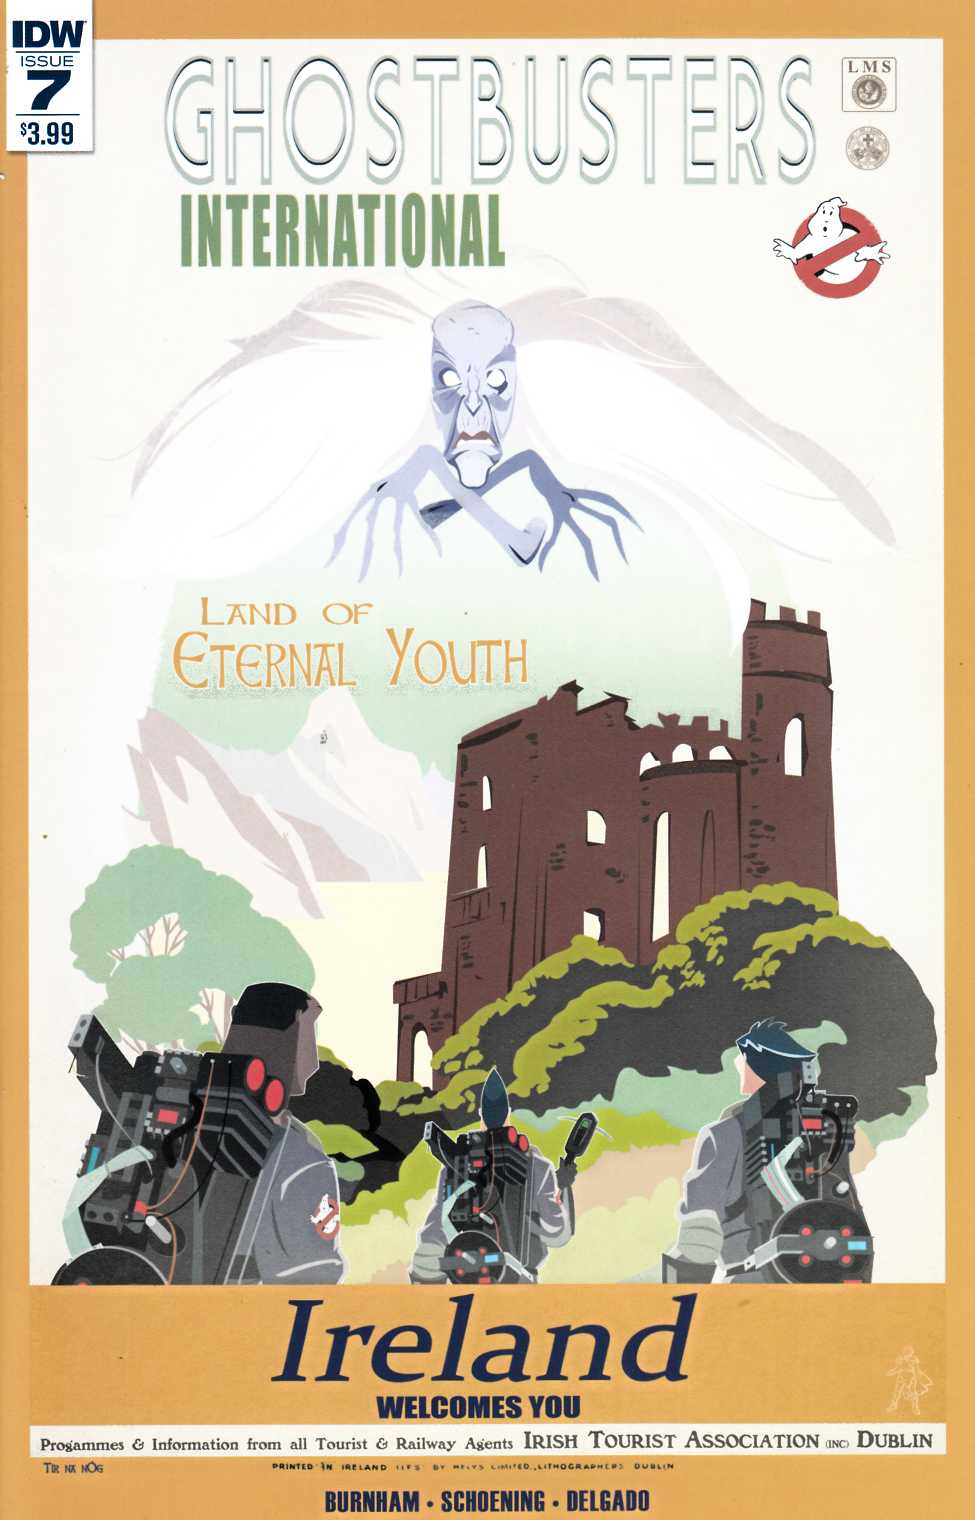 Ghostbusters International #7 [IDW Comic] THUMBNAIL